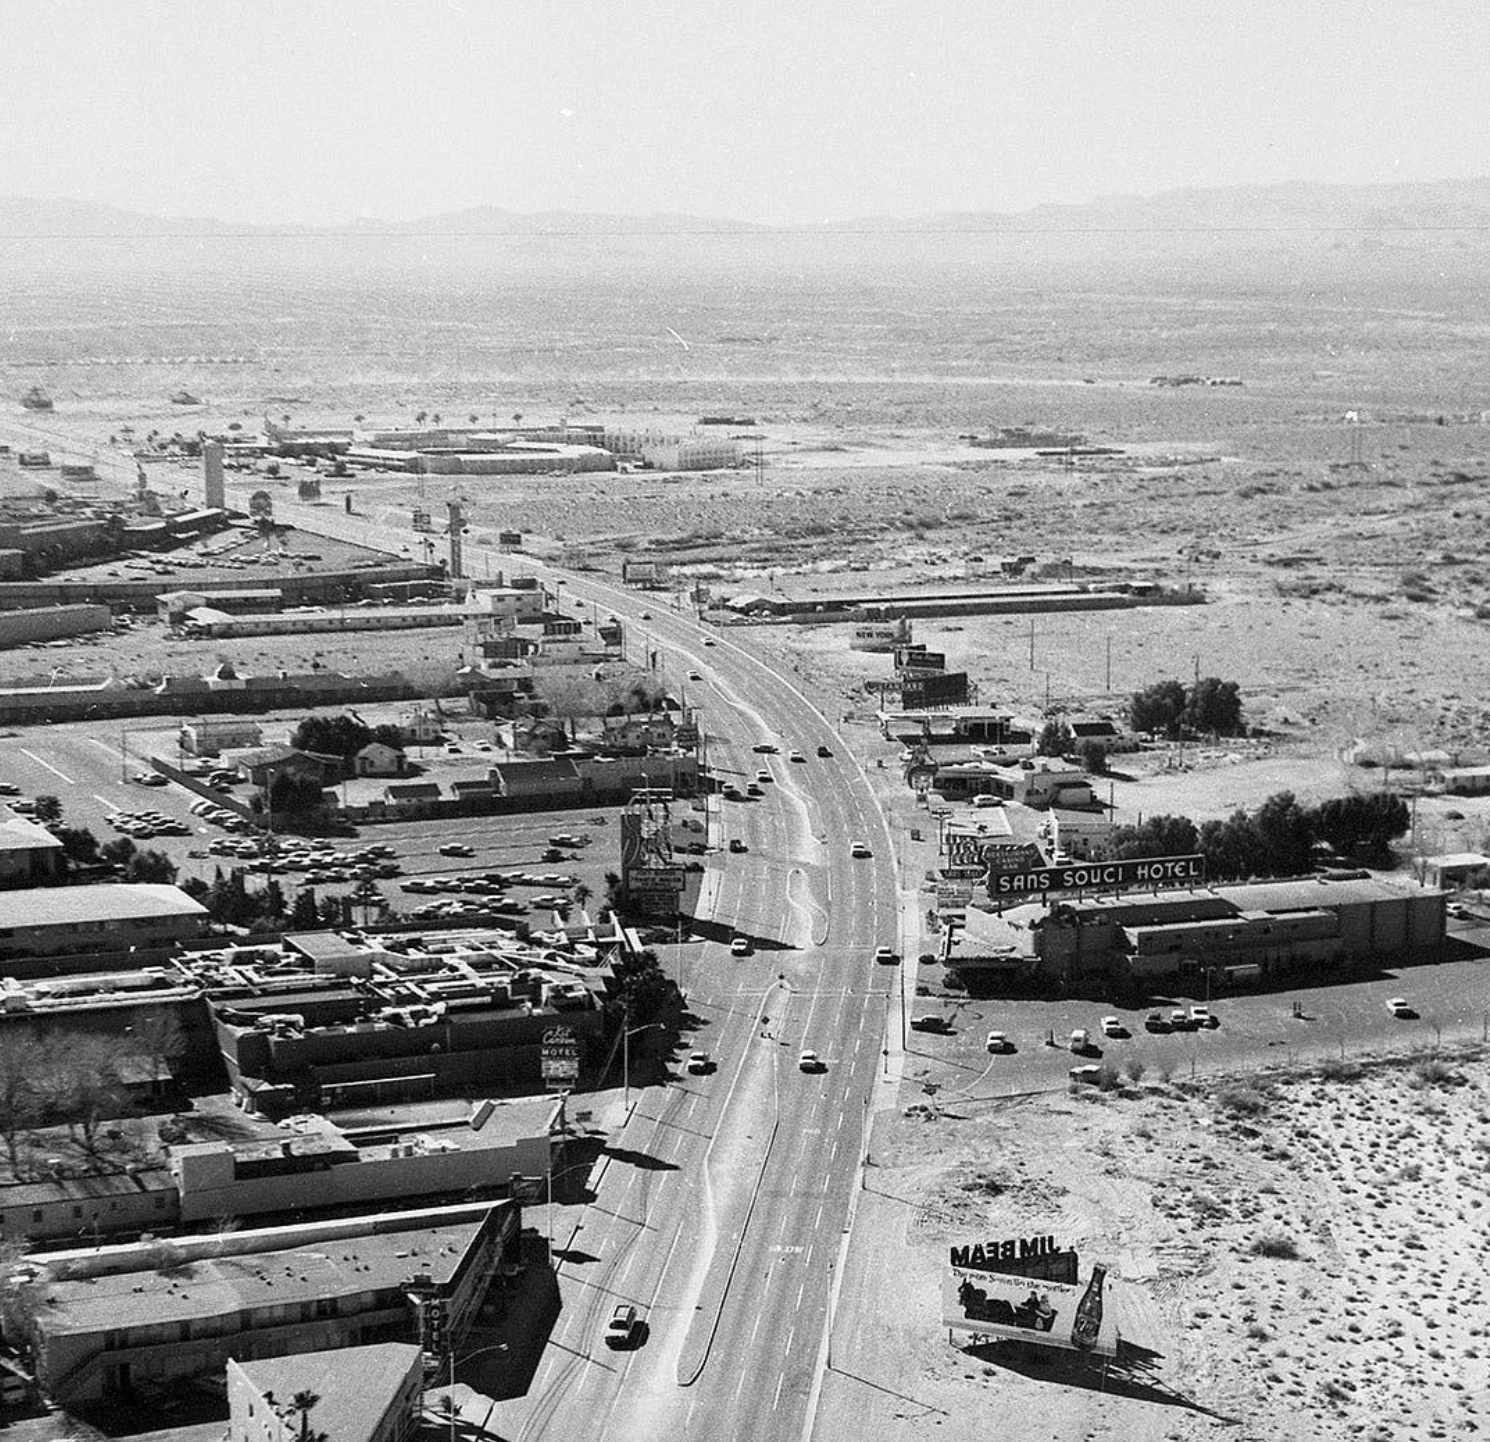 Over the Strip, January 11, 1961. We're looking south over the area where Palazzo, Venetian, The Mirage, and Treasure Island now stand. To the left: Sands, Kit Carson Motel, and Tam O'Shanter Motel which lasted to 2005. On the right: Sans Souci Hotel, service stations, and the private residence of Grace Hayes. © Vintage Las Vegas Instagram